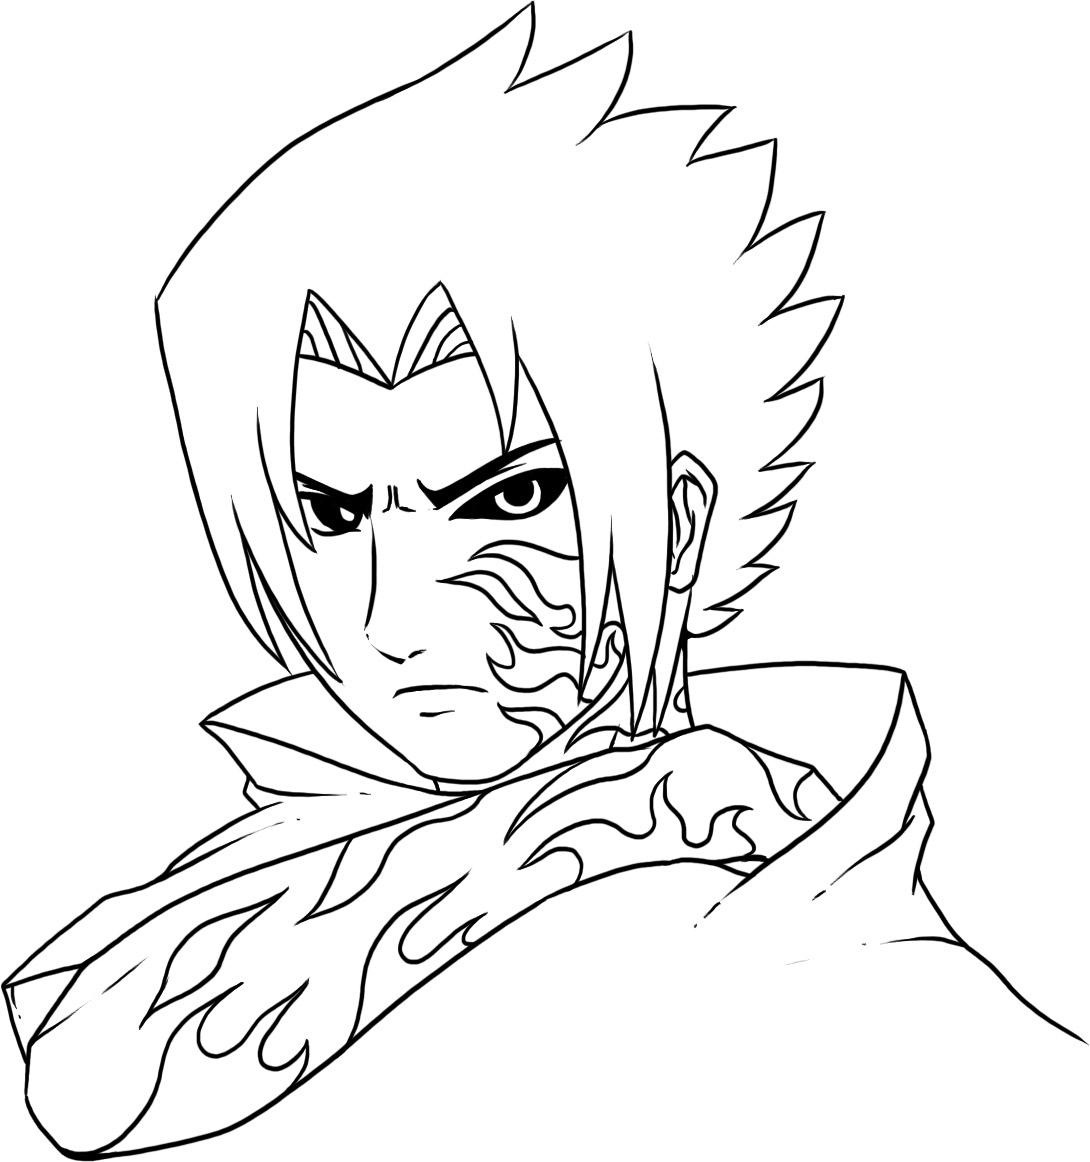 naruto coloring book pages - photo#41